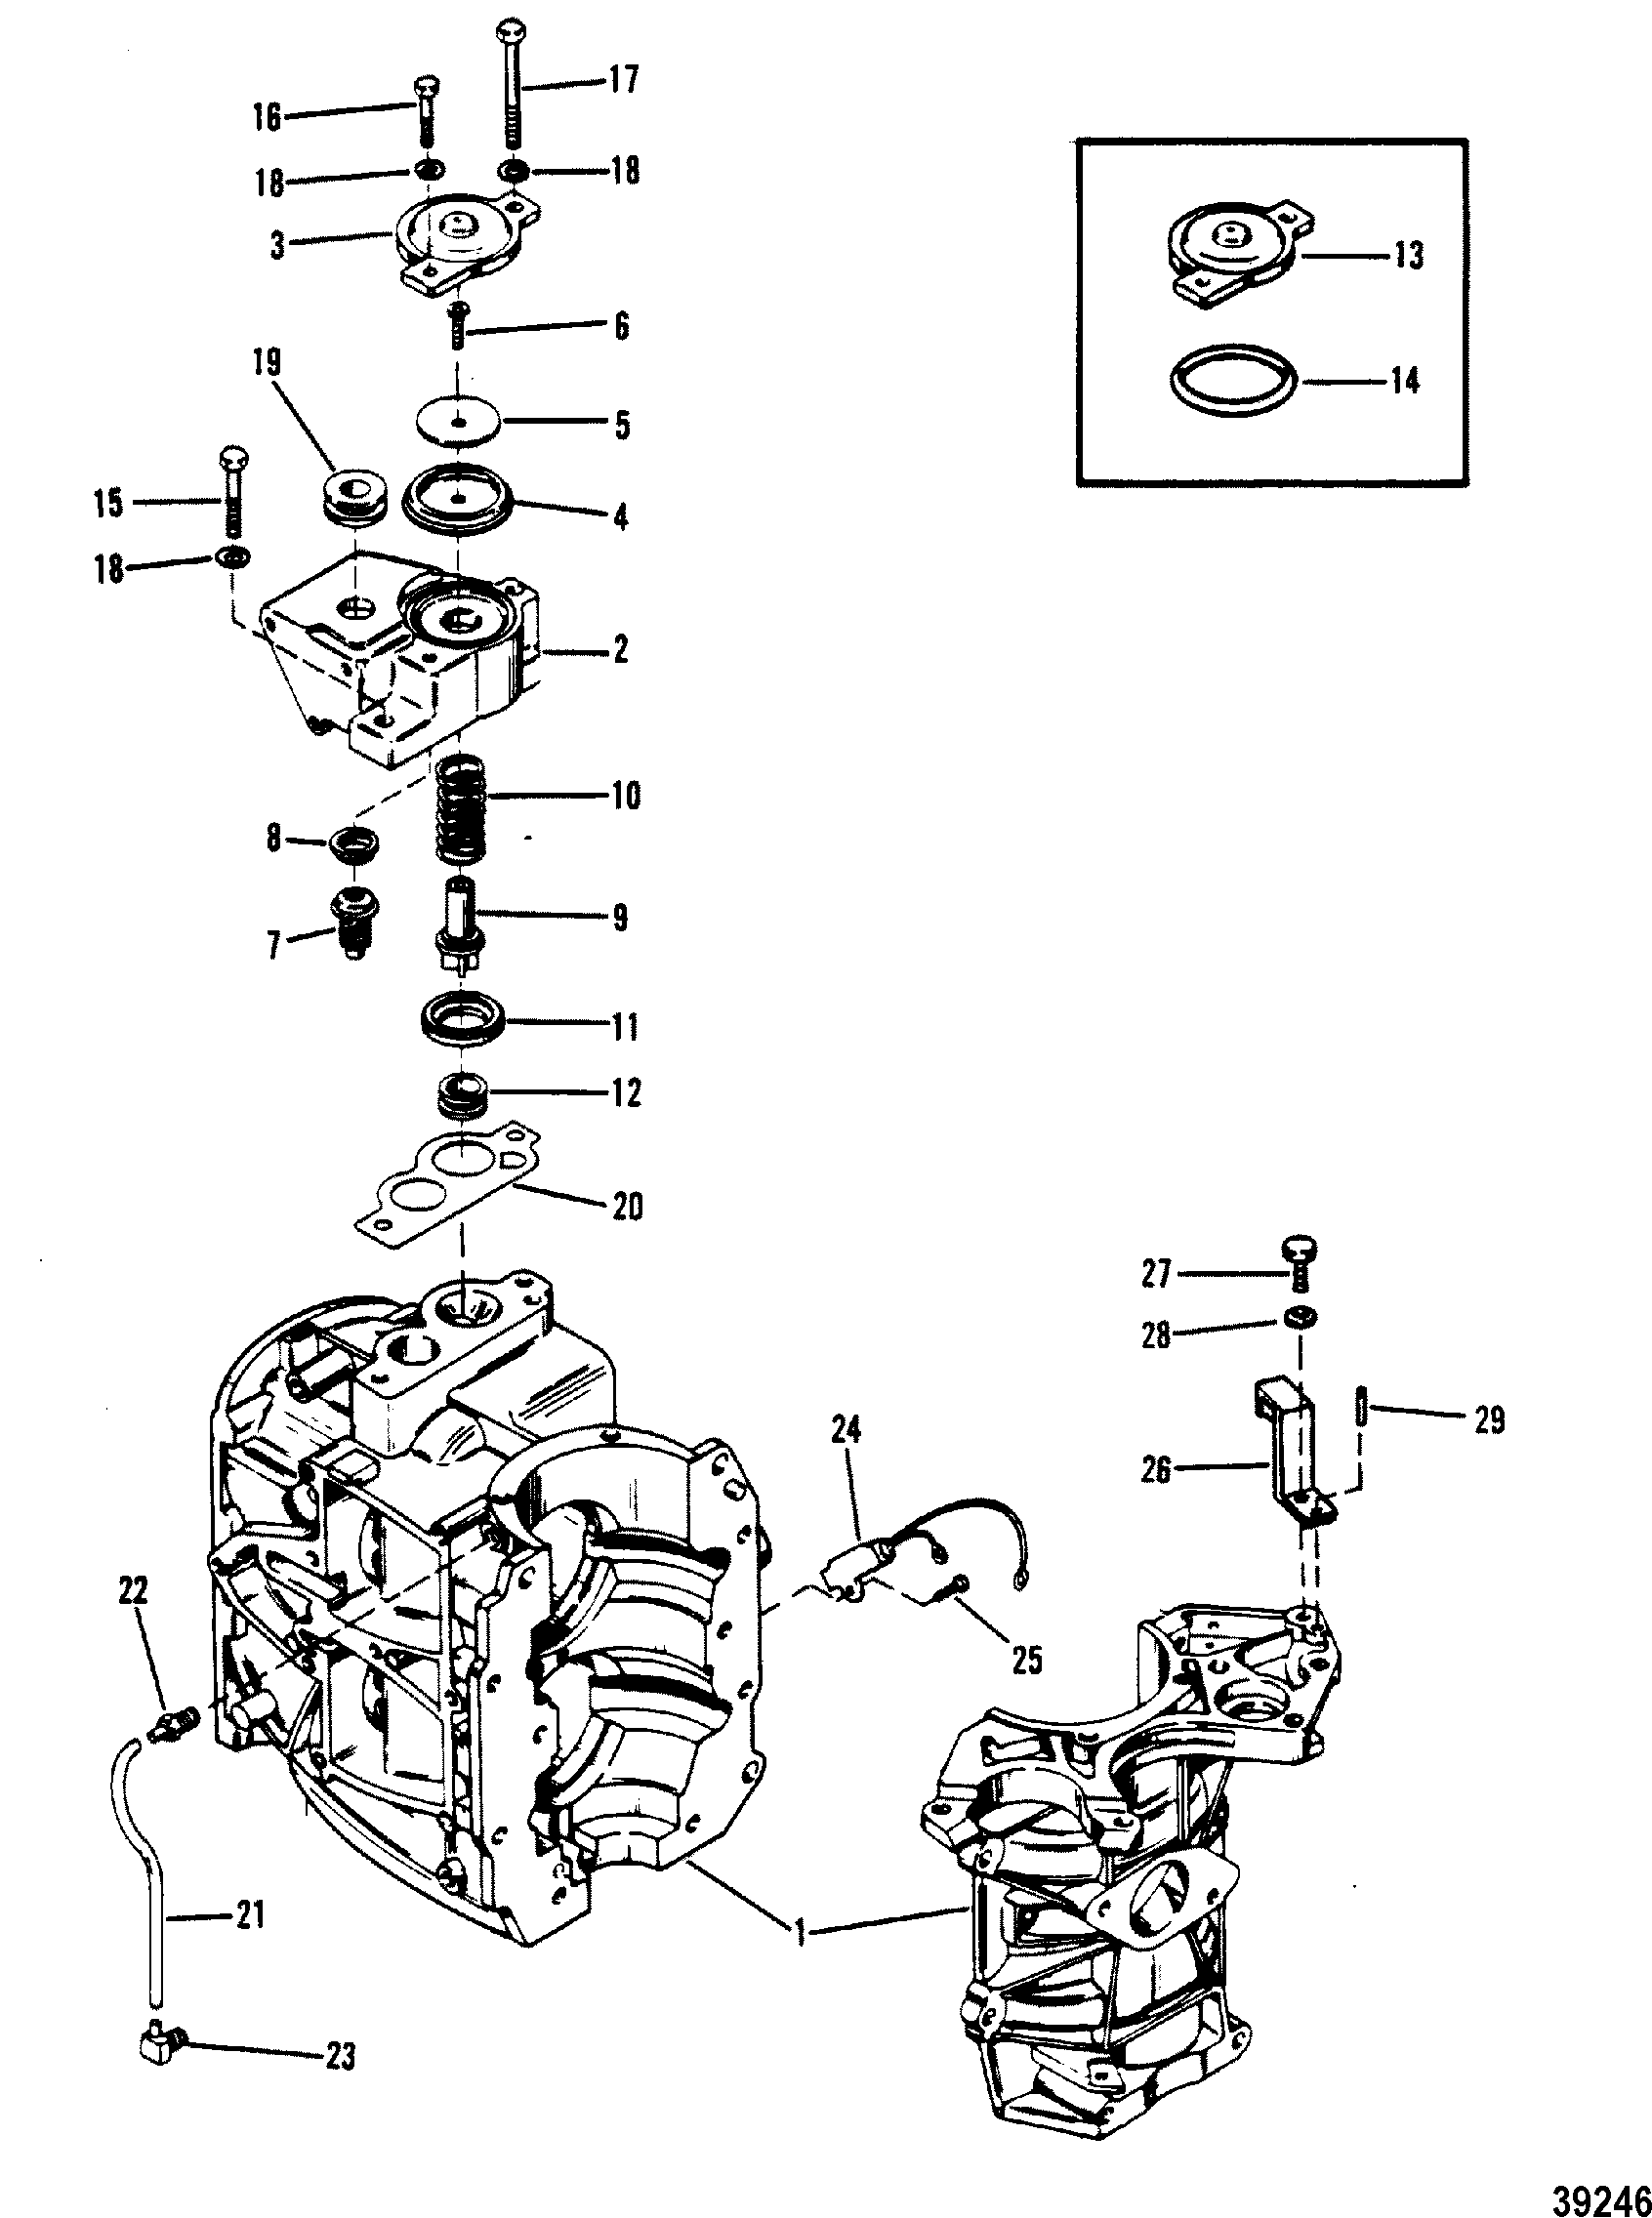 58s58L [DIAGRAM] Hp 2 Cylinder Mercury Outboard Control